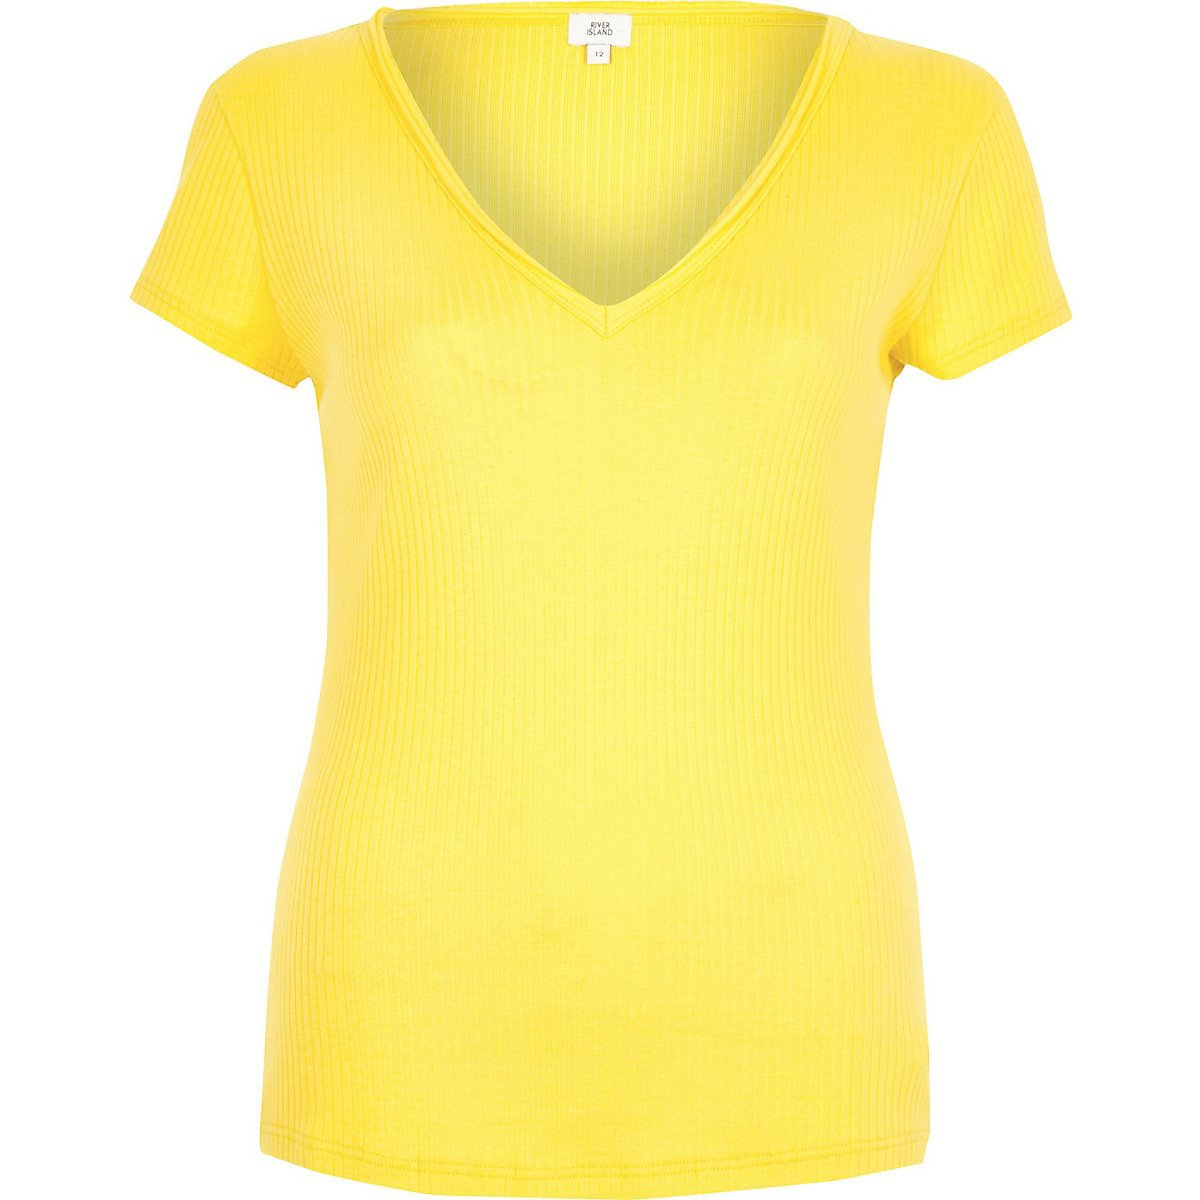 Yellow ribbed V neck T-shirt - T-Shirts - Tops - women